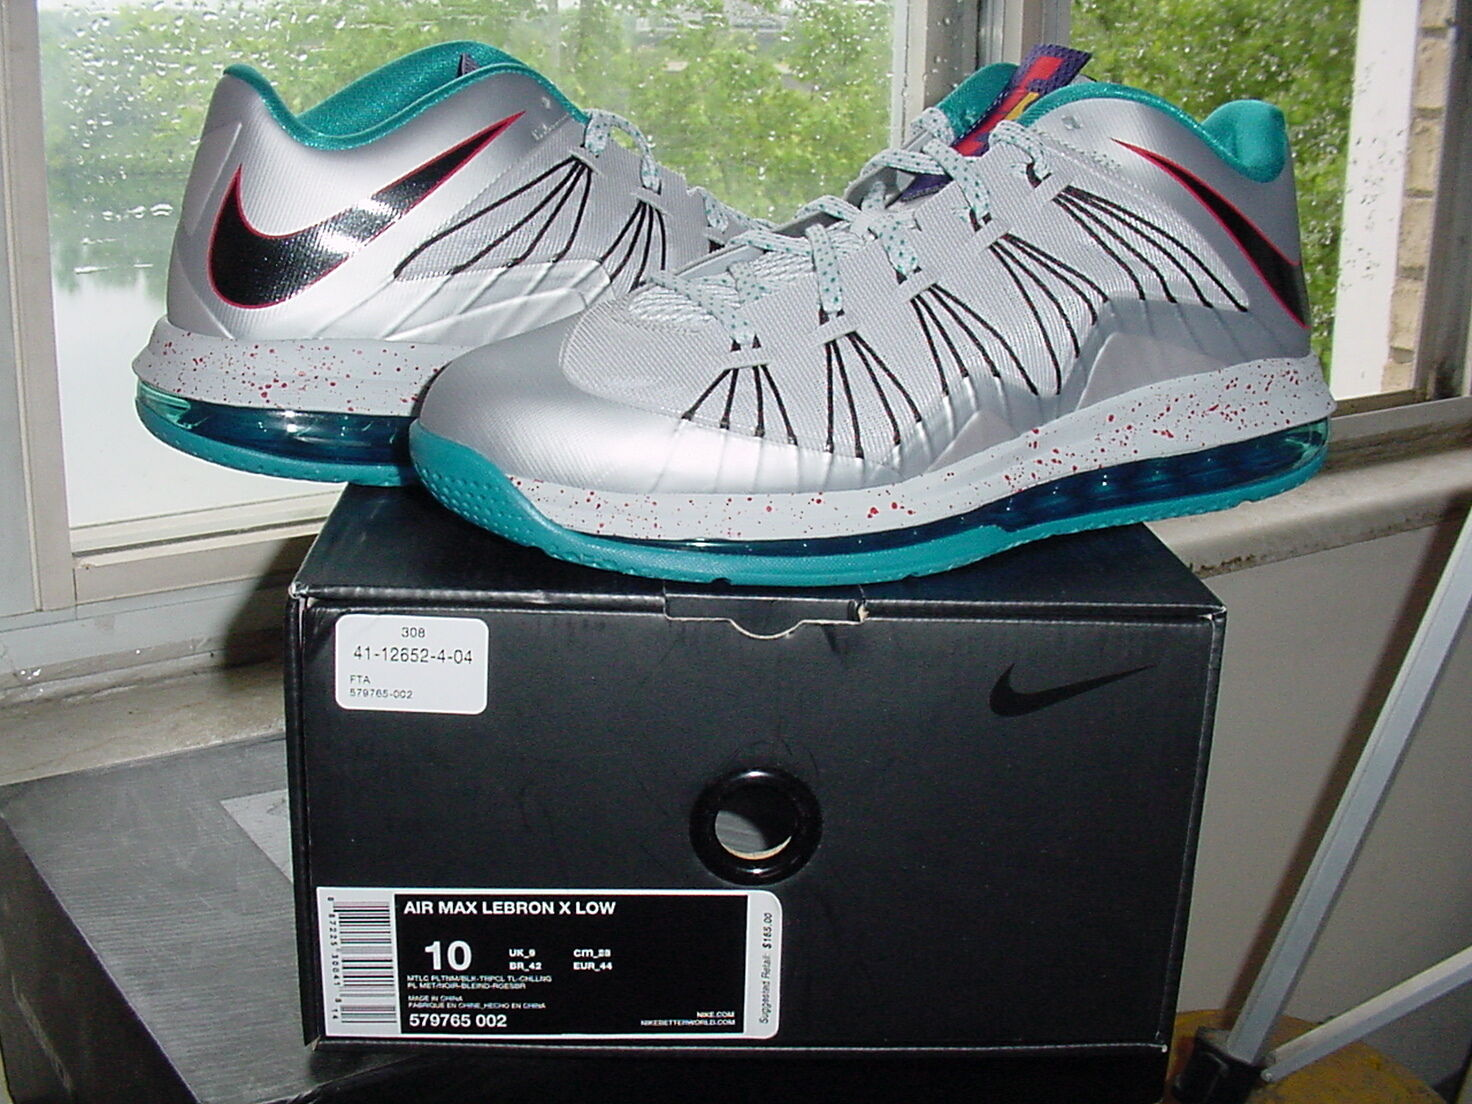 Nike Air Zoom Max LeBron James X 10 Low Akron Aeros Platinum Teal xi 579765 002